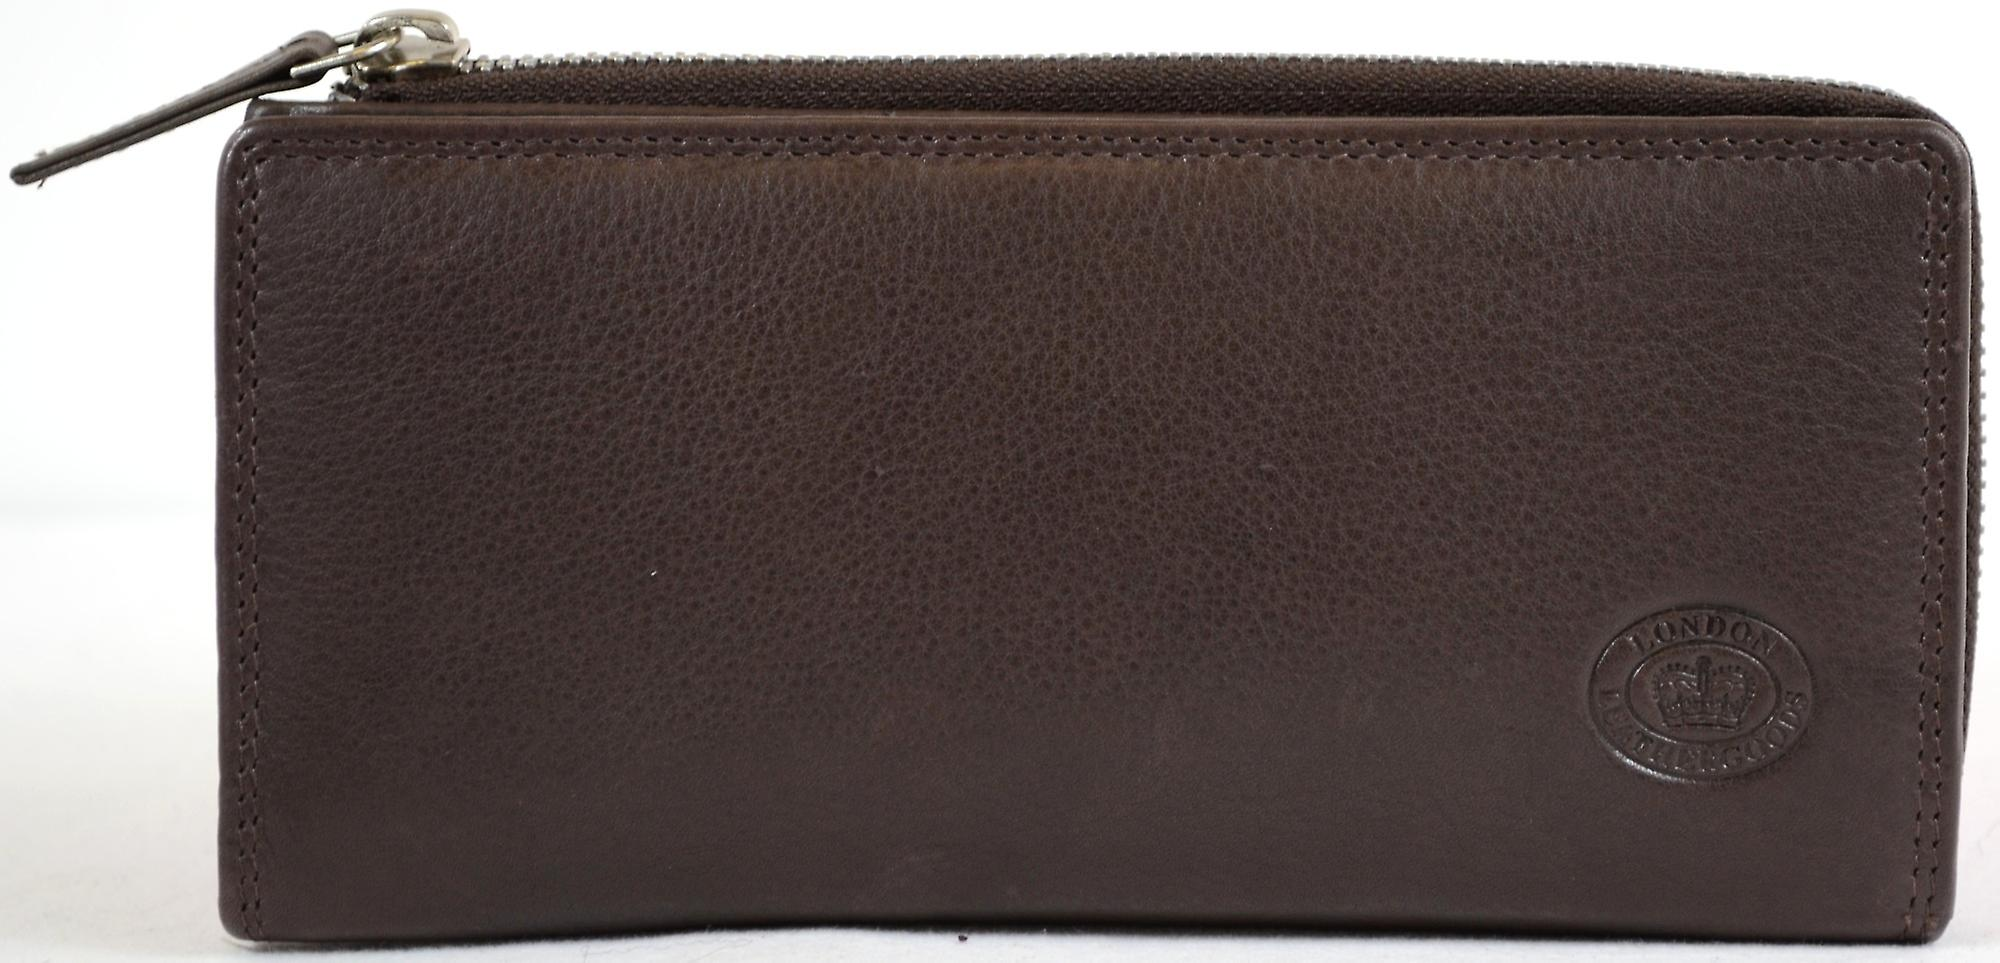 adc3901acd2 Ladies Large Soft Nappa Leather Matinee Purse with Multiple Credit Card  Slots and Pockets ( Brown